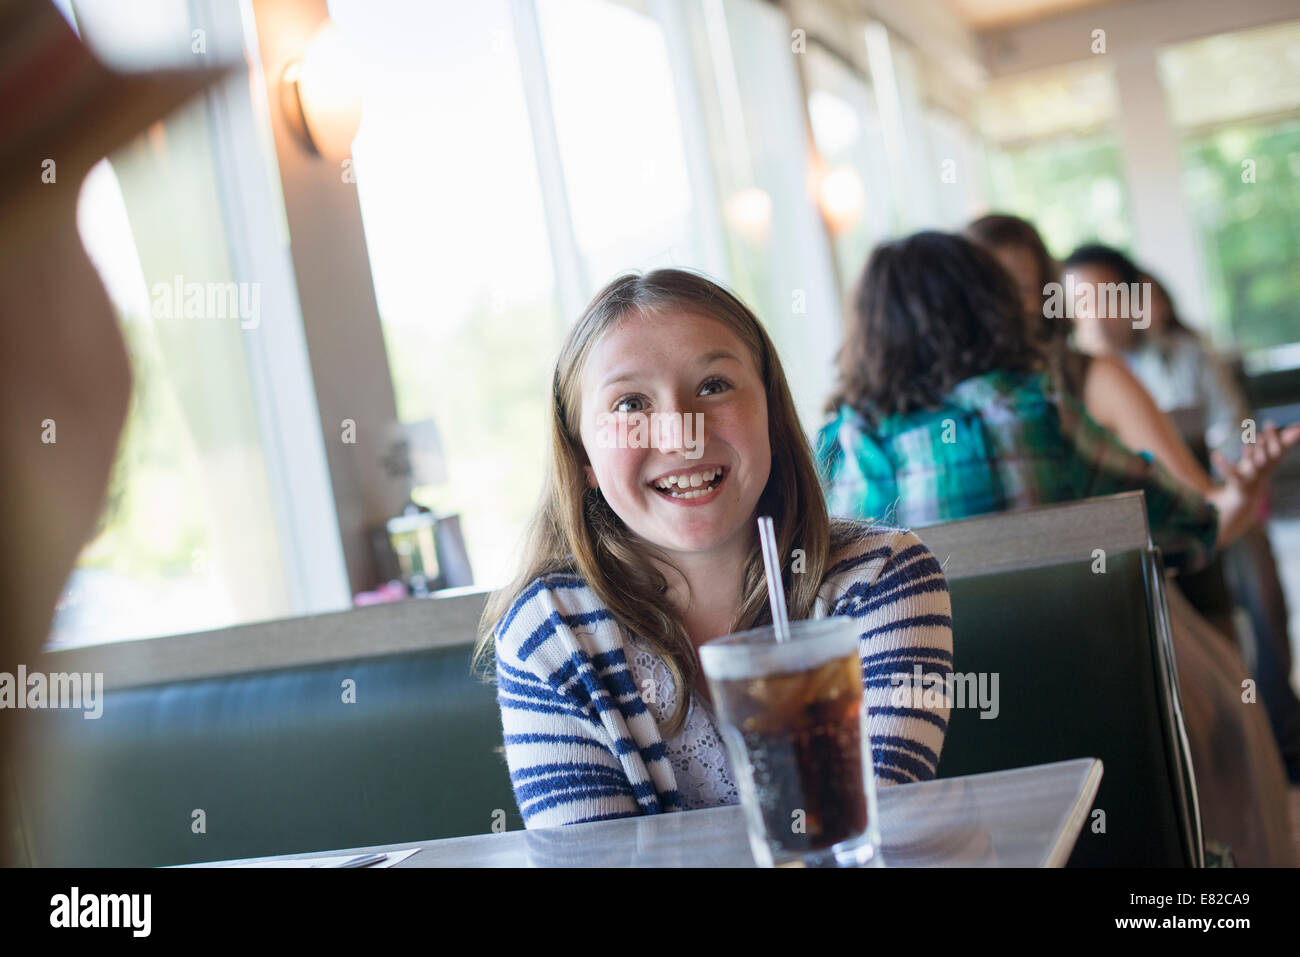 A child seated at a diner with a large cold drink in a glass with a straw. - Stock Image